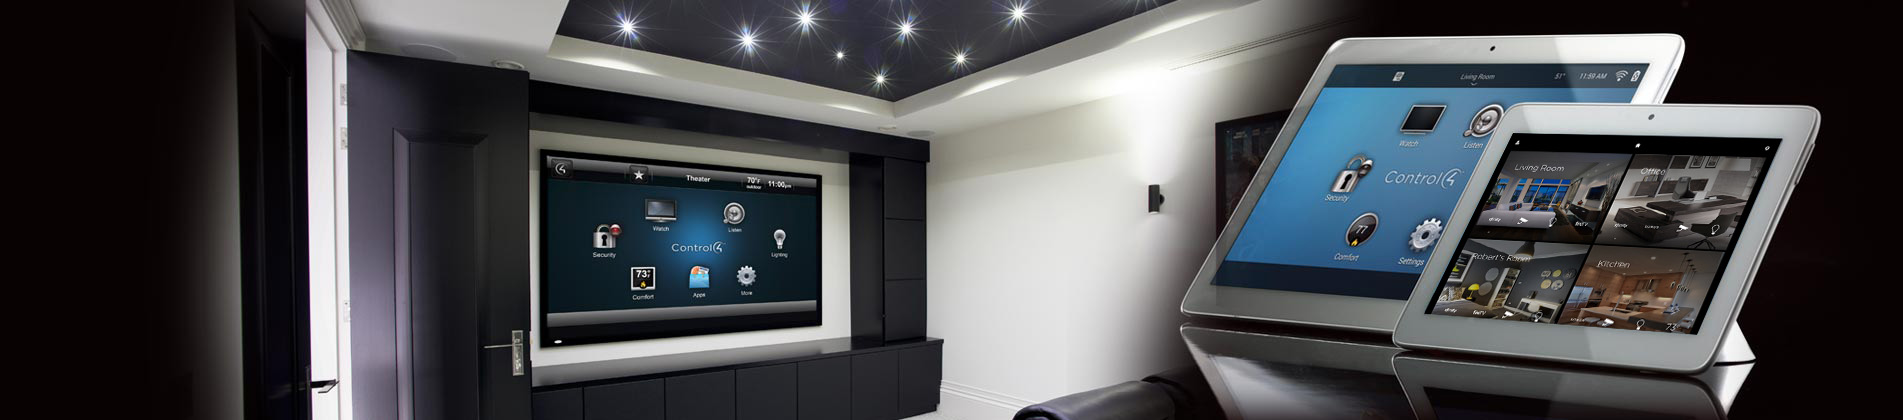 Home Automation Home Theater And Surveillance Camera System